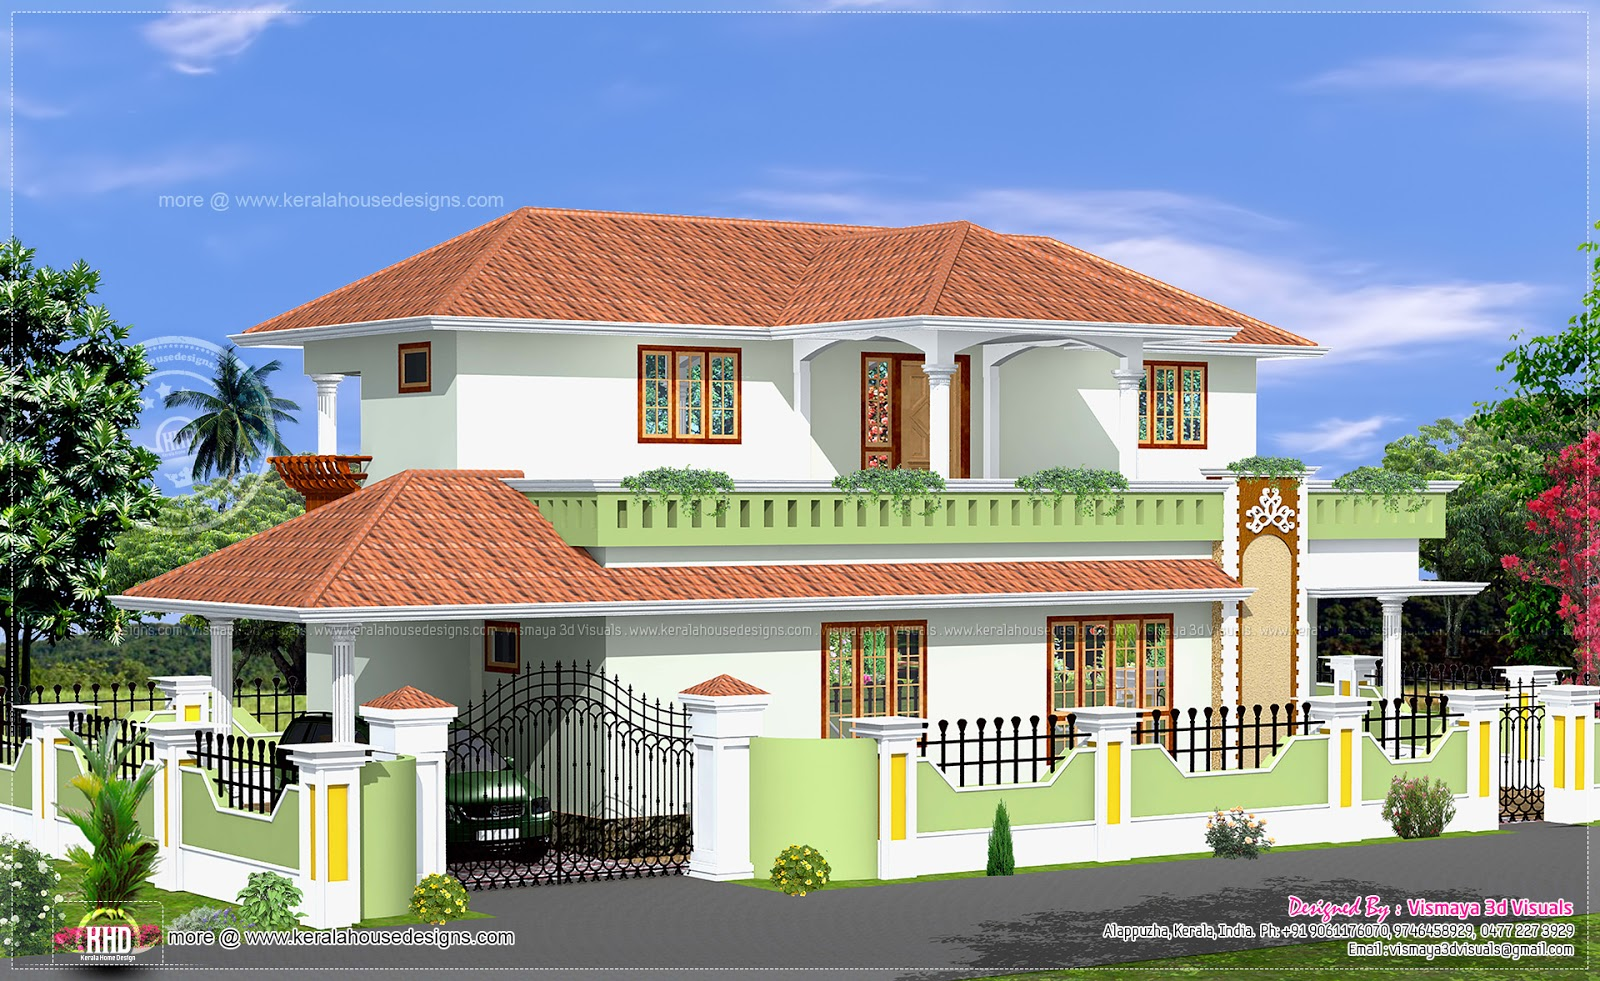 Simple 4 bed room kerala style house kerala home design Simple house model design